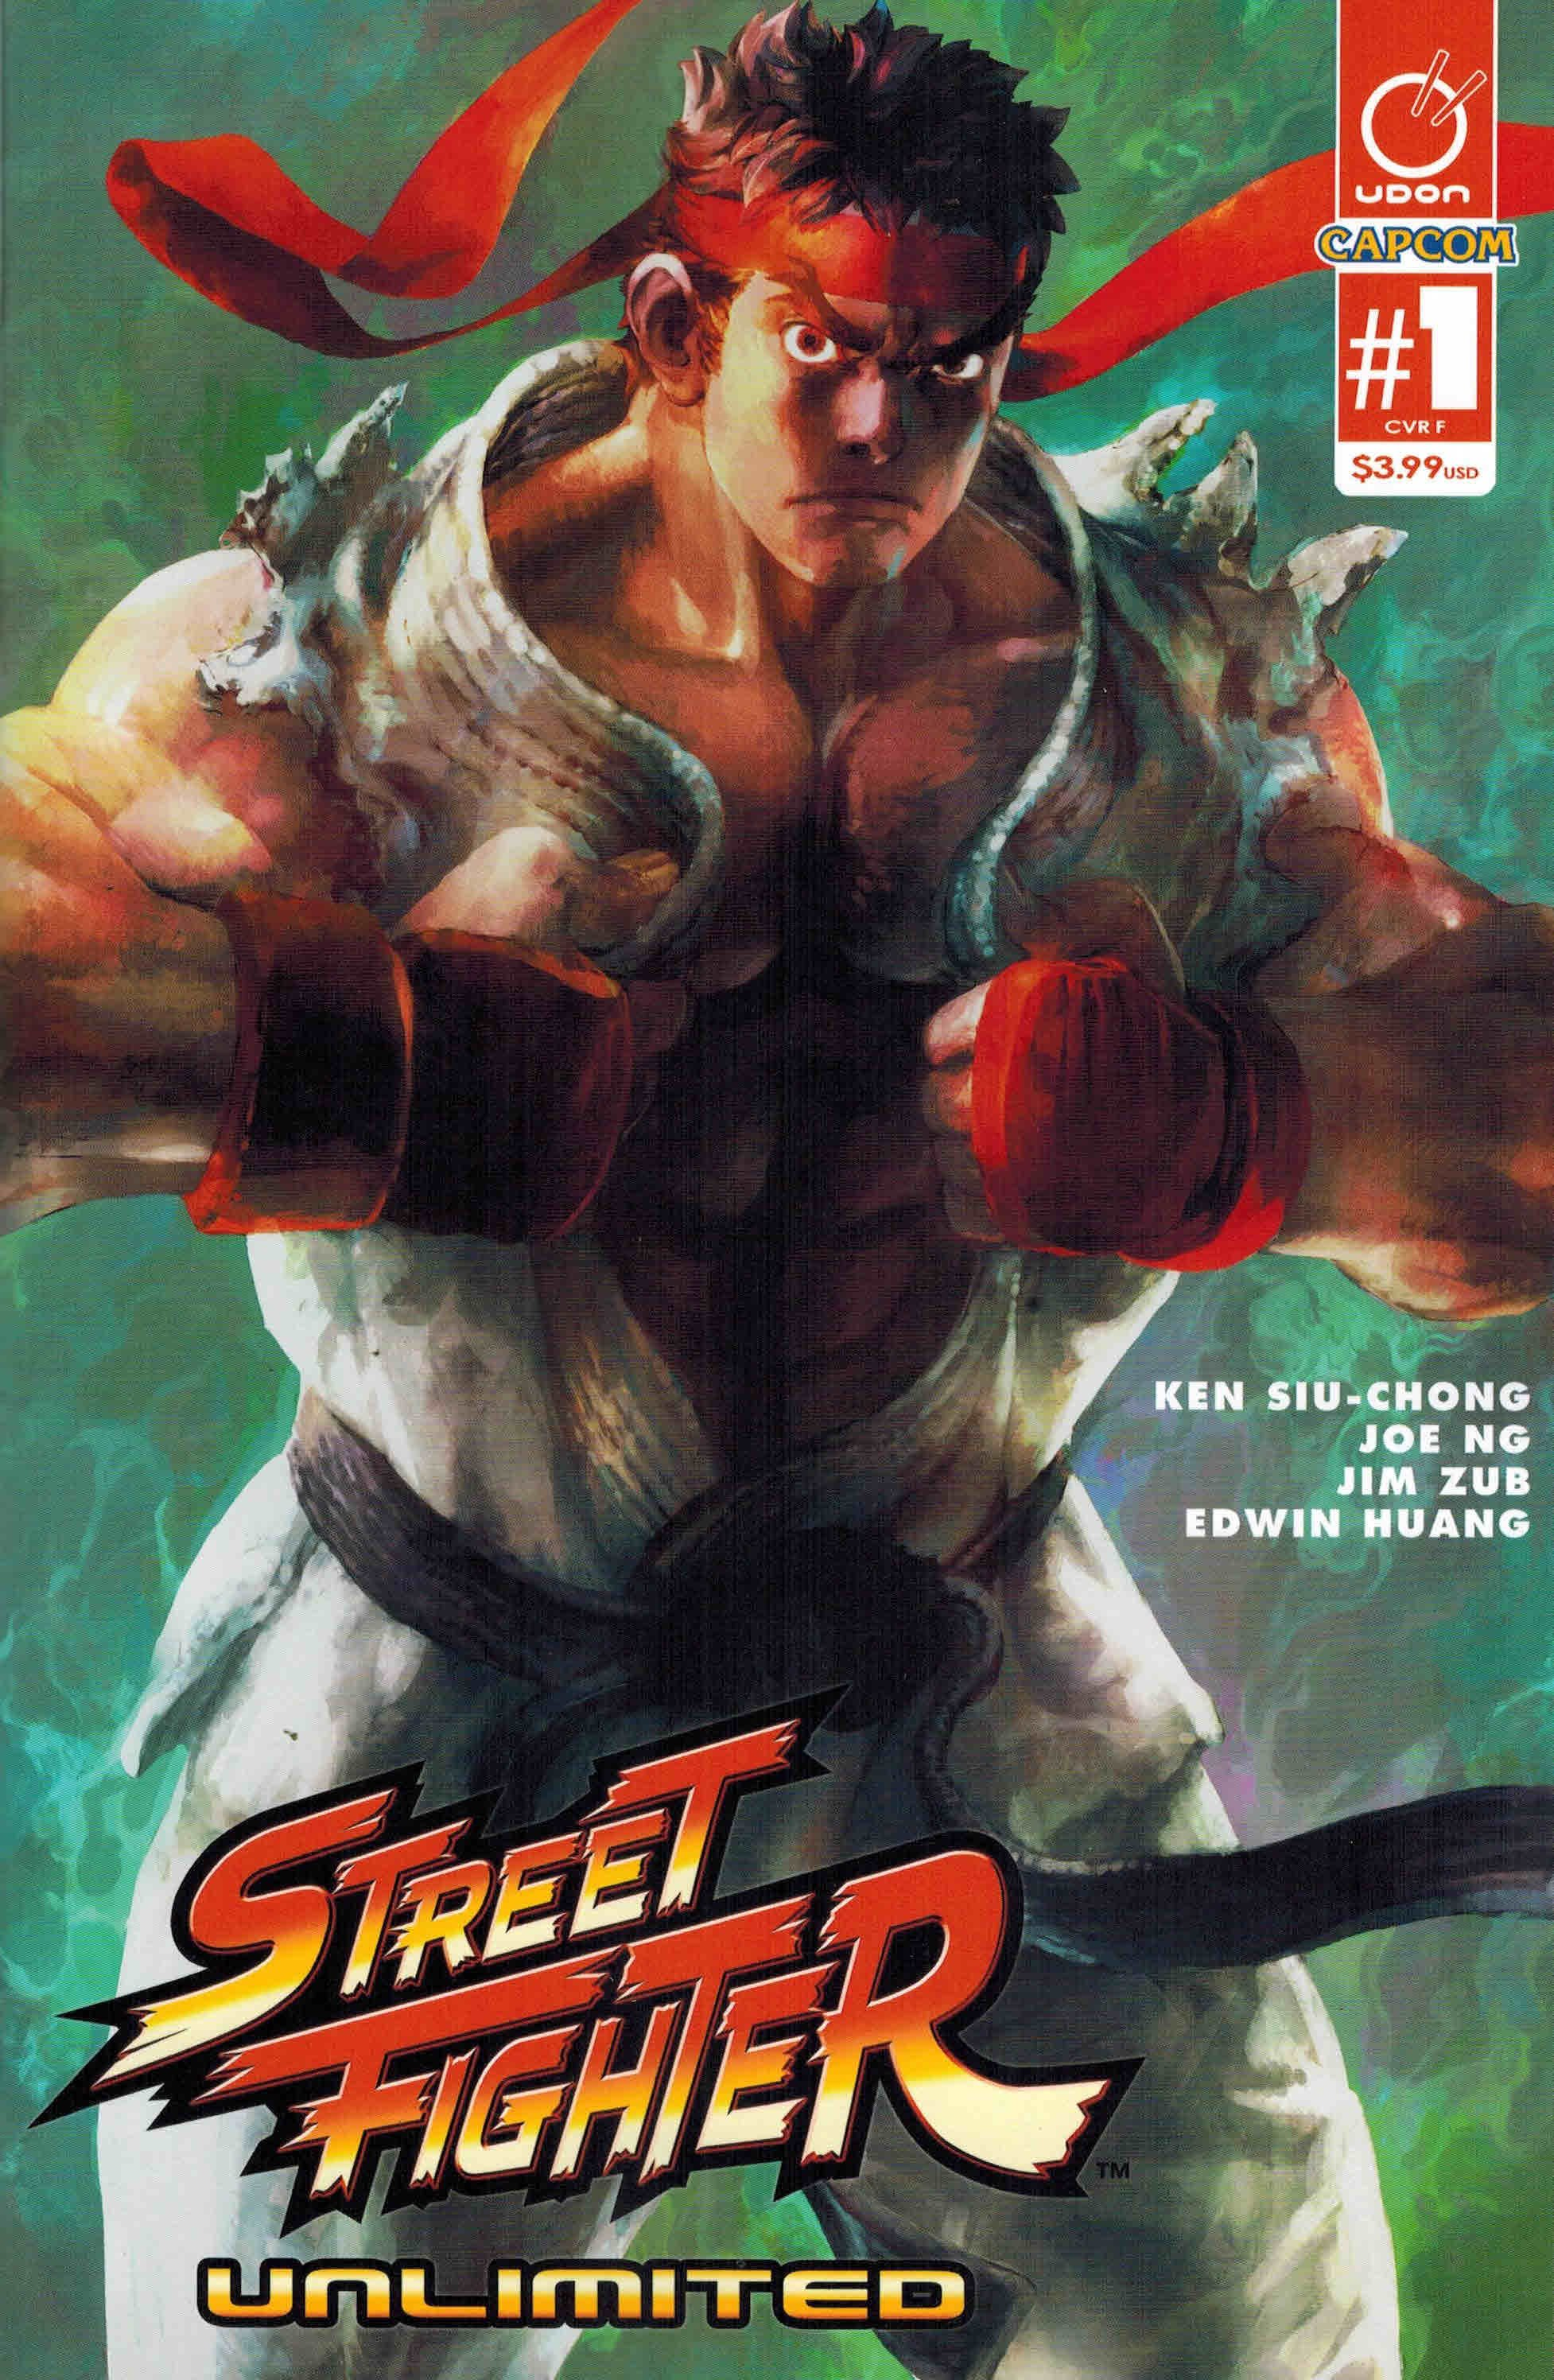 Street Fighter Unlimited 001 (December 2015) (cover F)